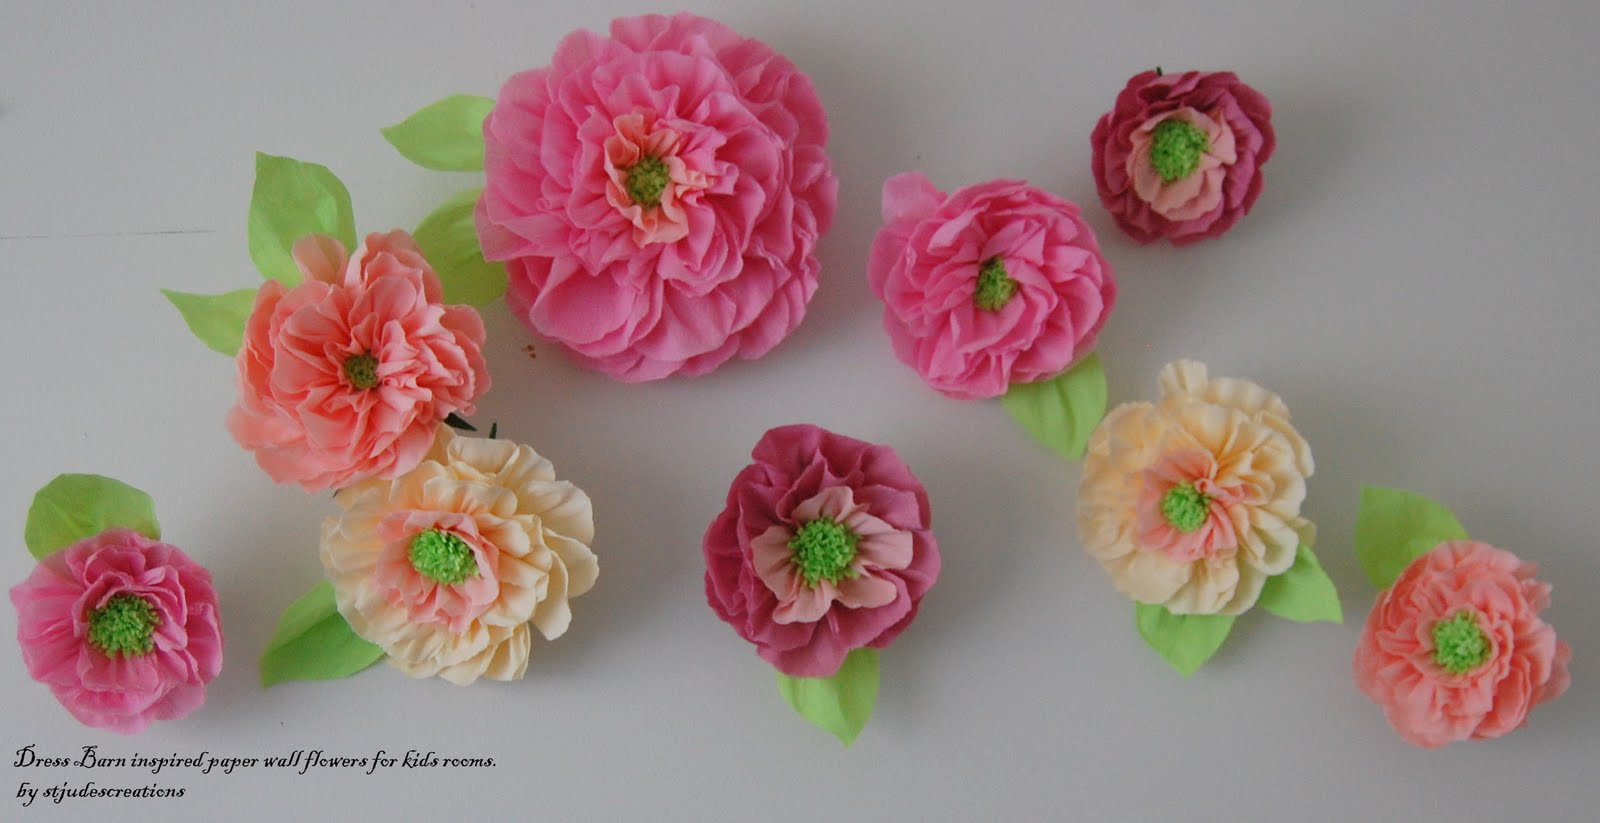 Pottery Barn Inspired Wall Paper Flowers Kids Room Decor